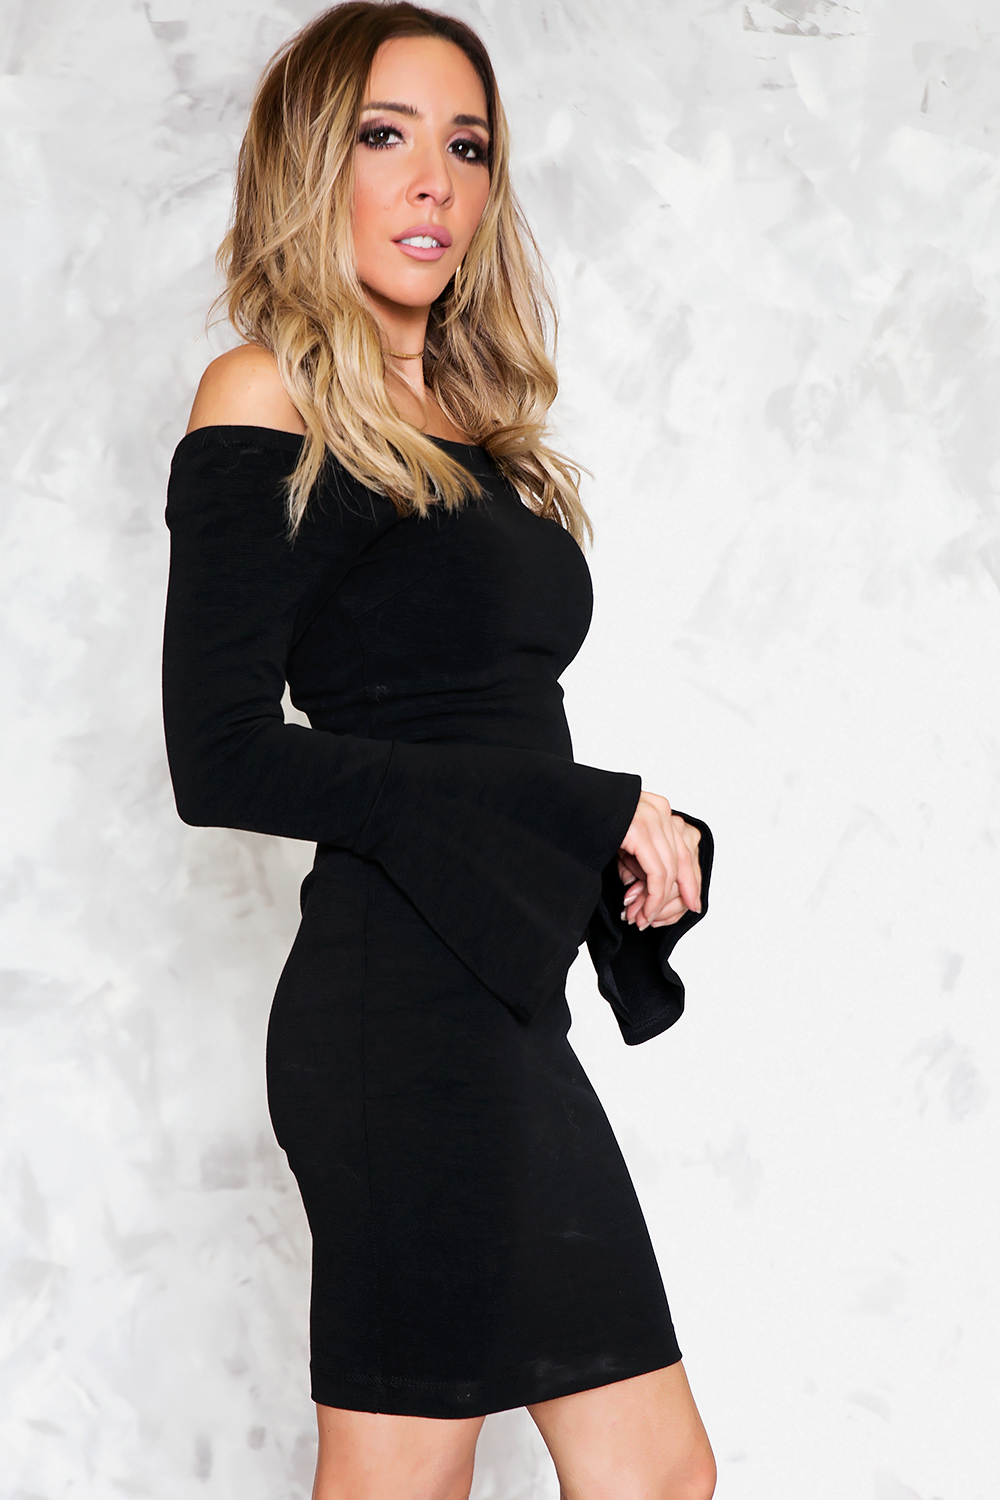 Ruffle Sleeve Off-Shoulder LBD /// Only 1-M Left ///